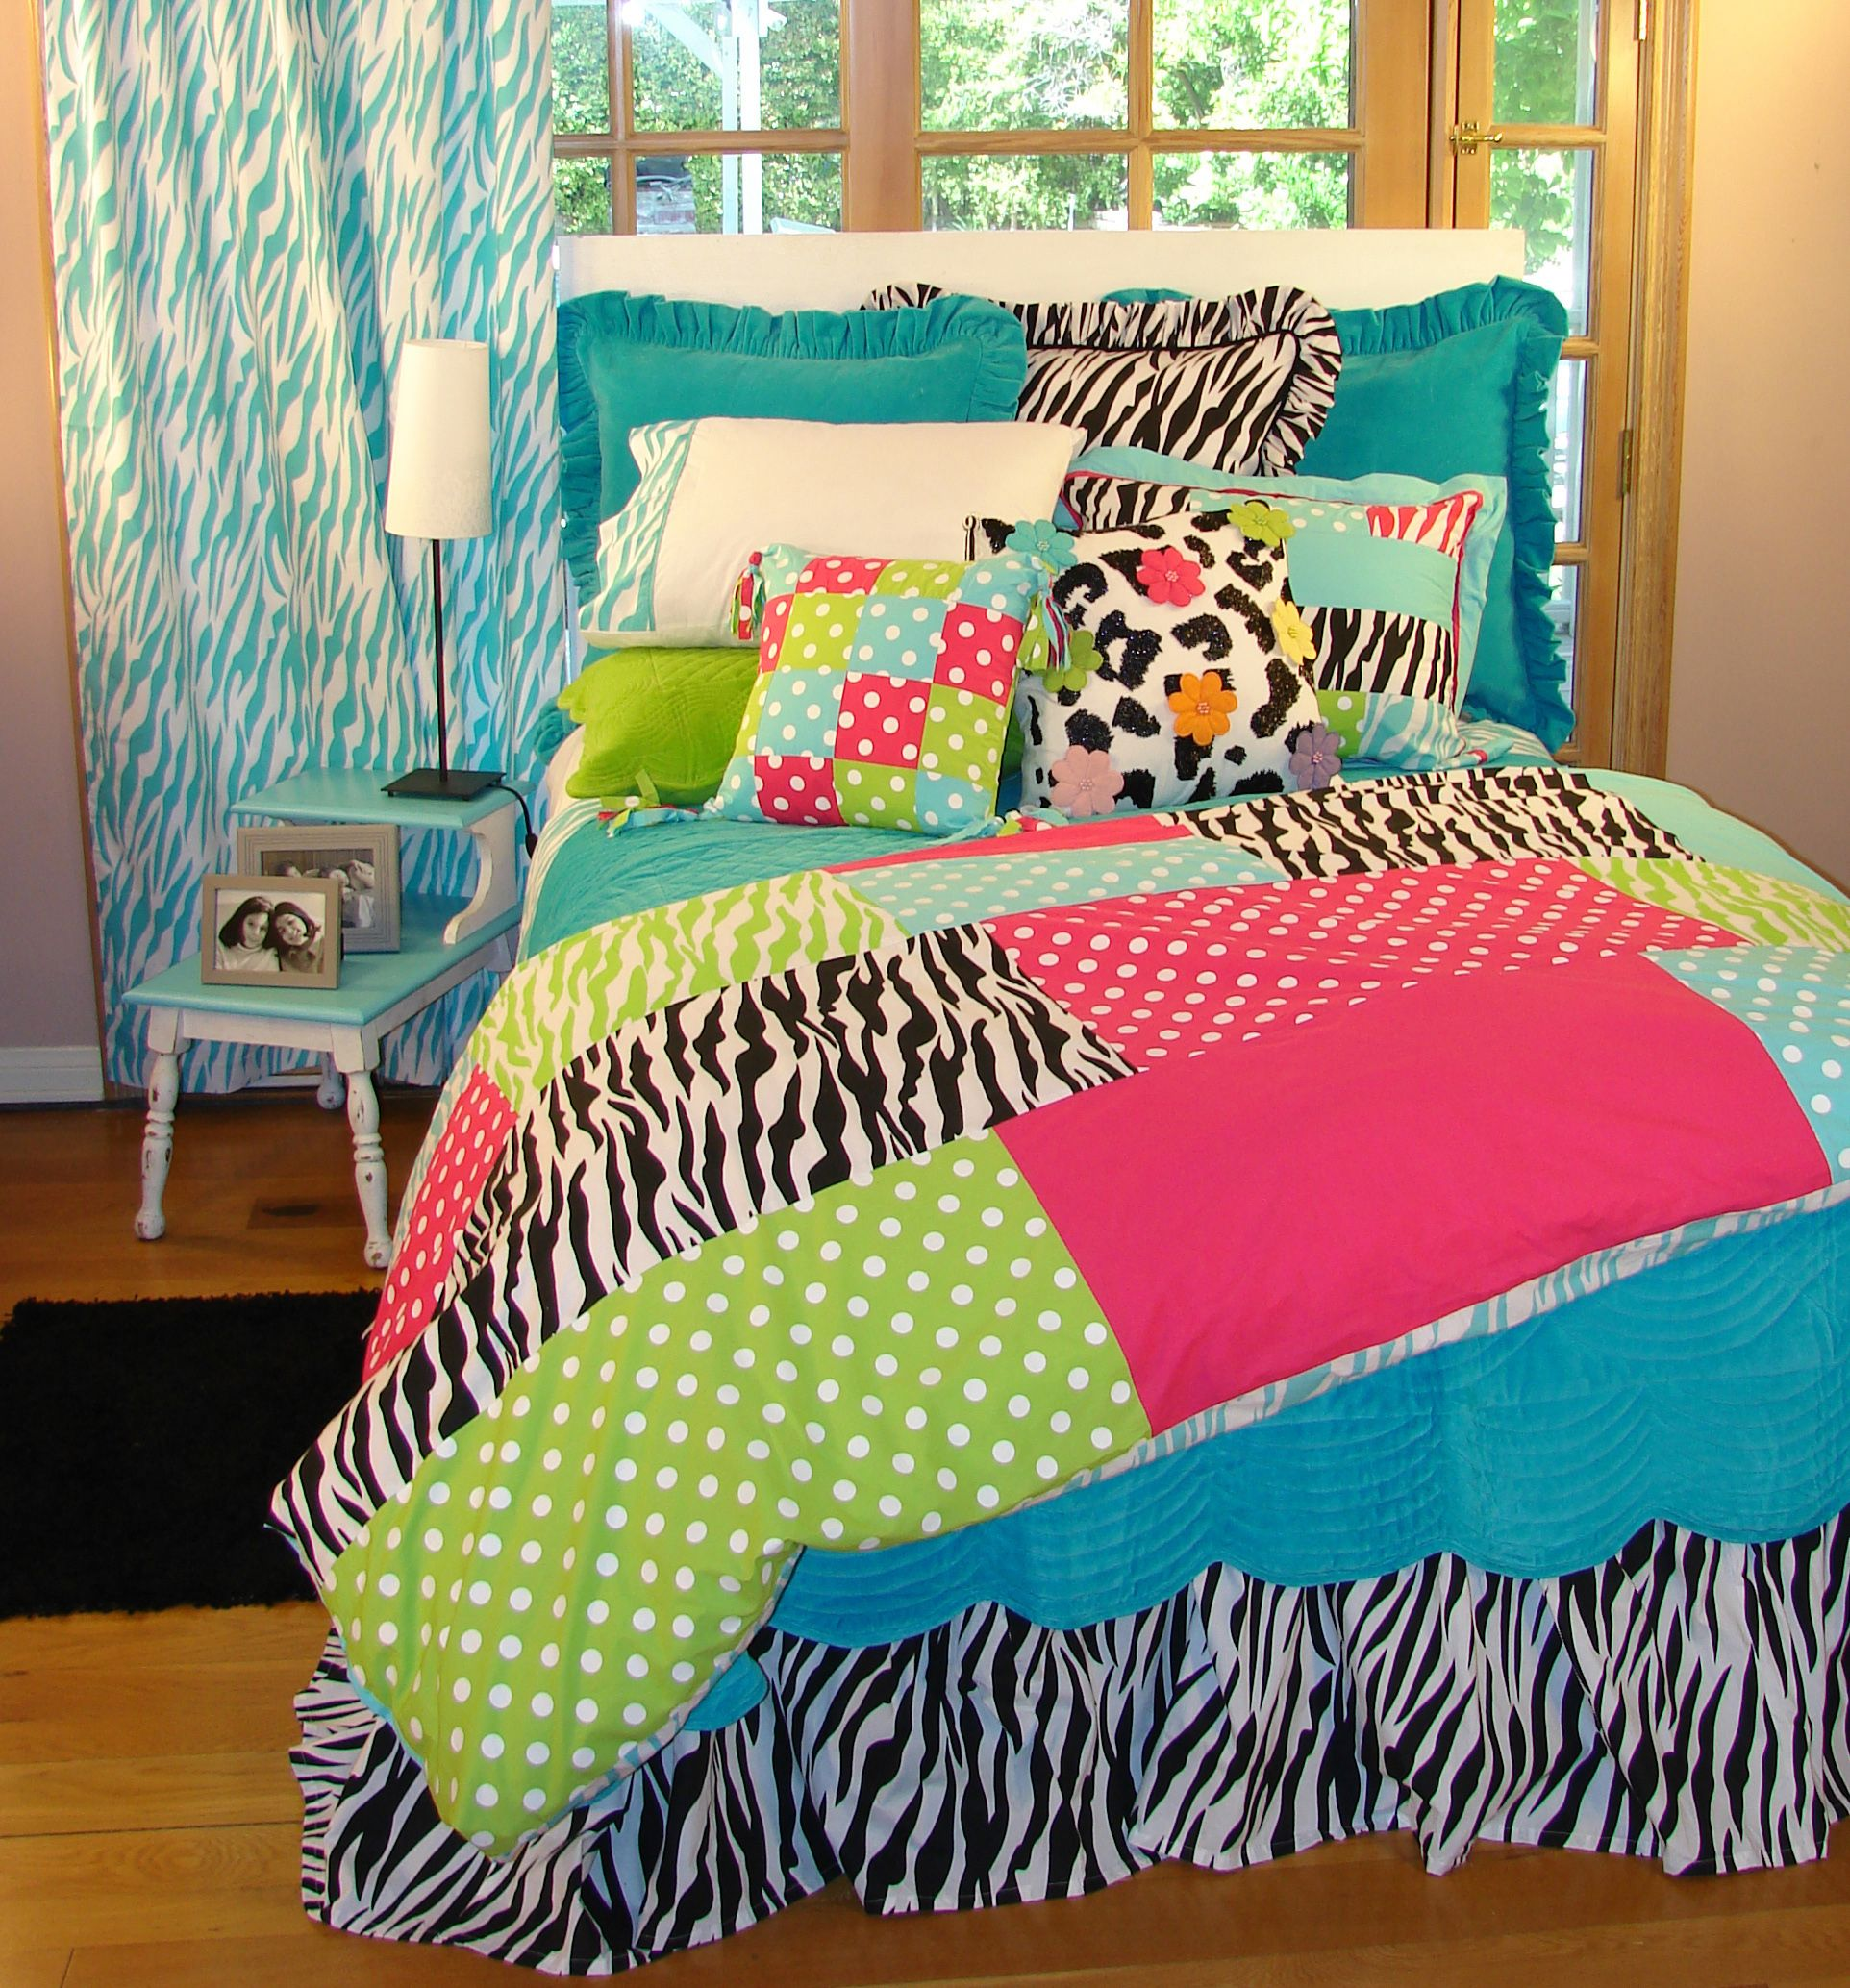 1000 images about beds on pinterest kid beds cool kids beds and bunk bed bedroom kids bed set cool